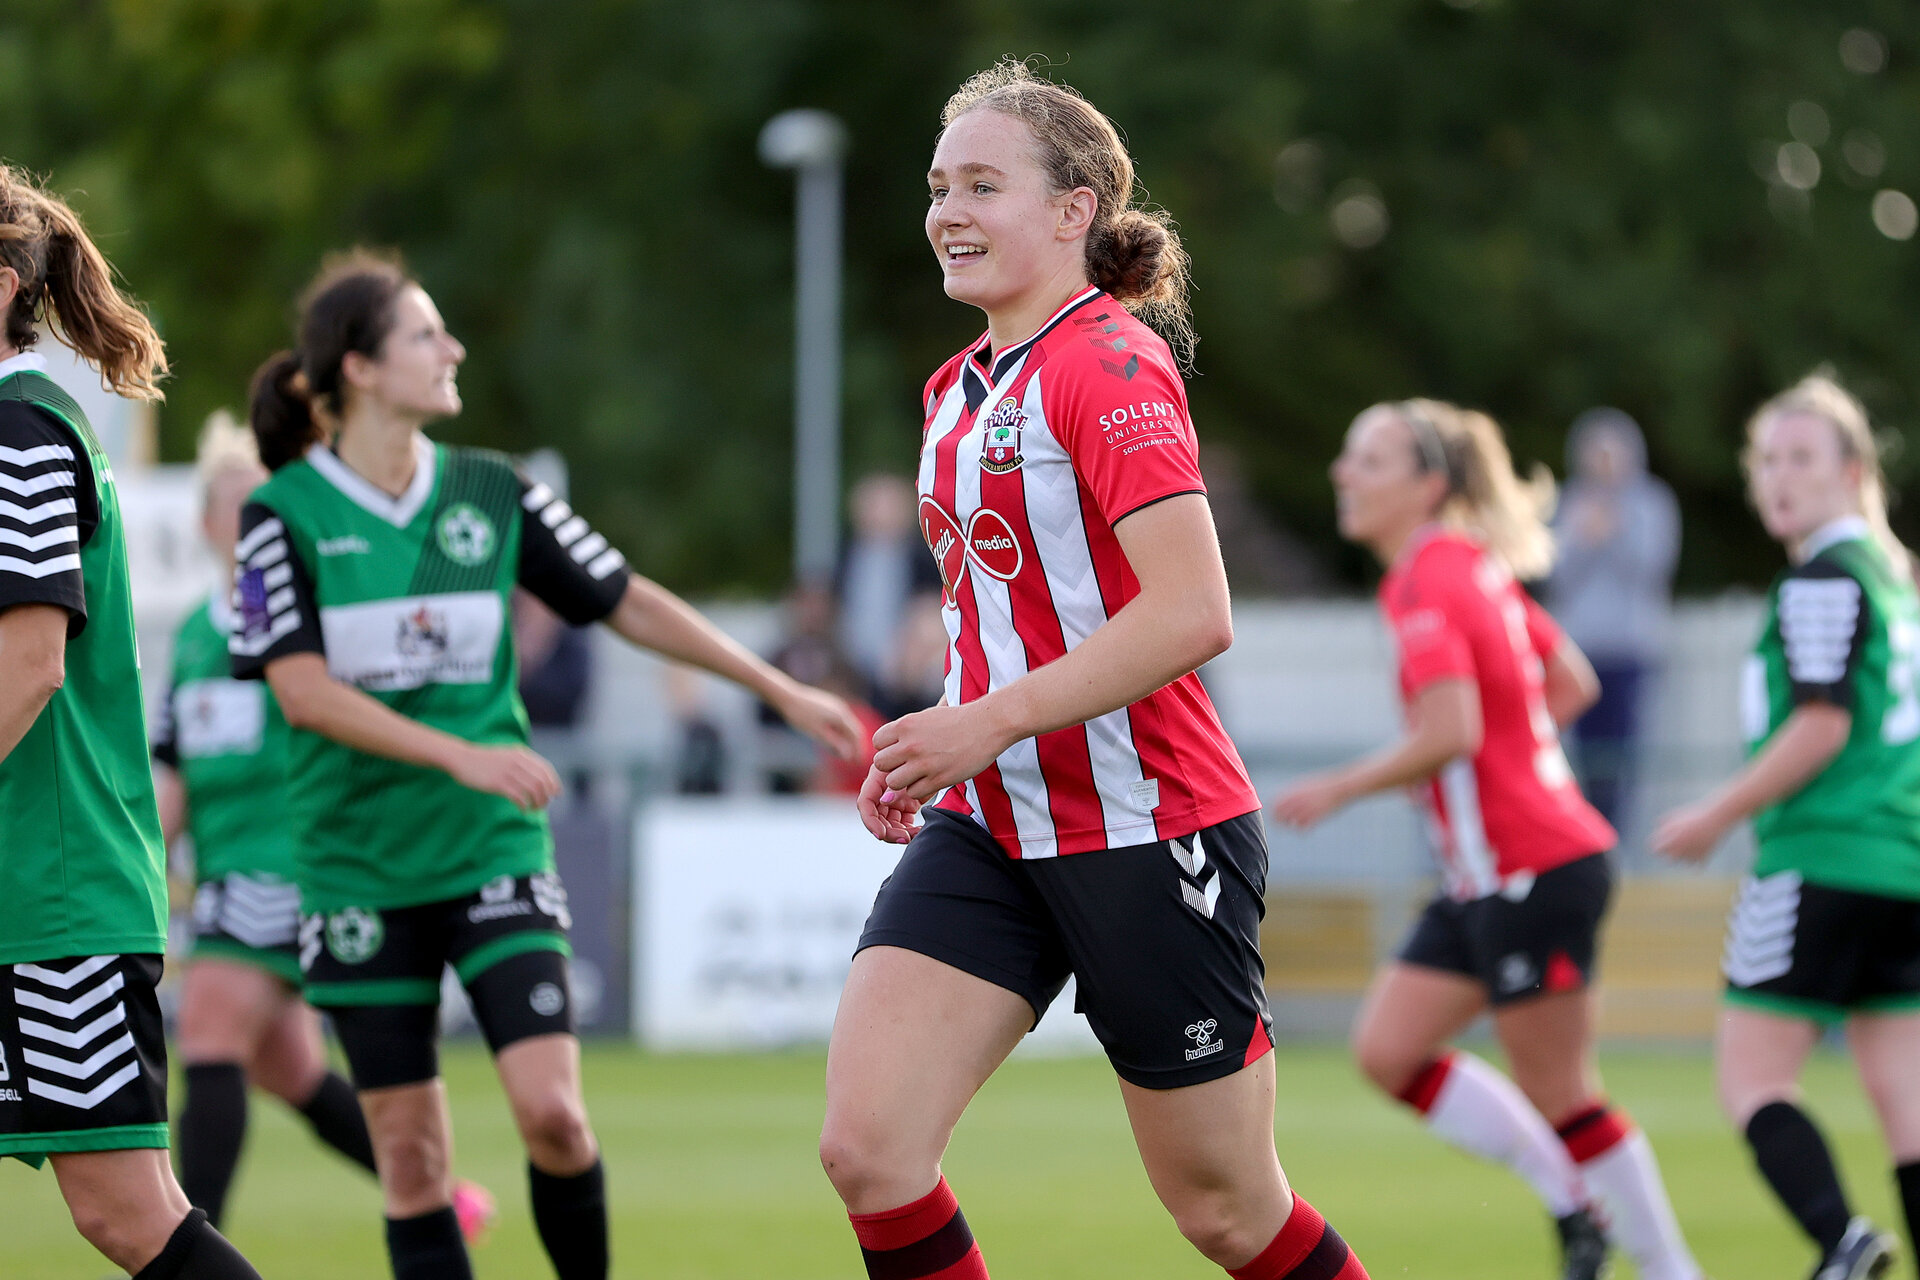 SOUTHAMPTON, ENGLAND - OCTOBER 03: Lucia Kendall of Southampton, Solent University Sponsorship during the FA National League Southern Premier match between Southampton Women and Keynsham Town at The Snows Stadium on October 03, 2021 in Southampton, England. (Photo by Isabelle Field/Southampton FC via Getty Images)